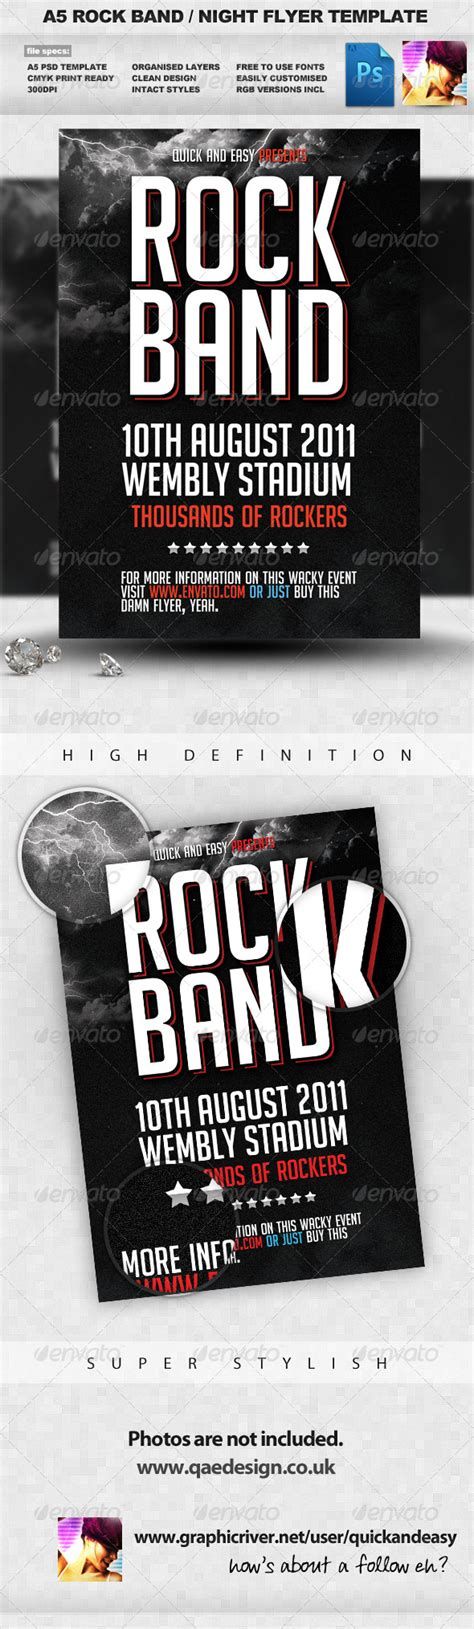 Creating A Rock Band Flyer In Illustrator 187 Tinkytyler Org Stock Photos Graphics Band Flyer Template